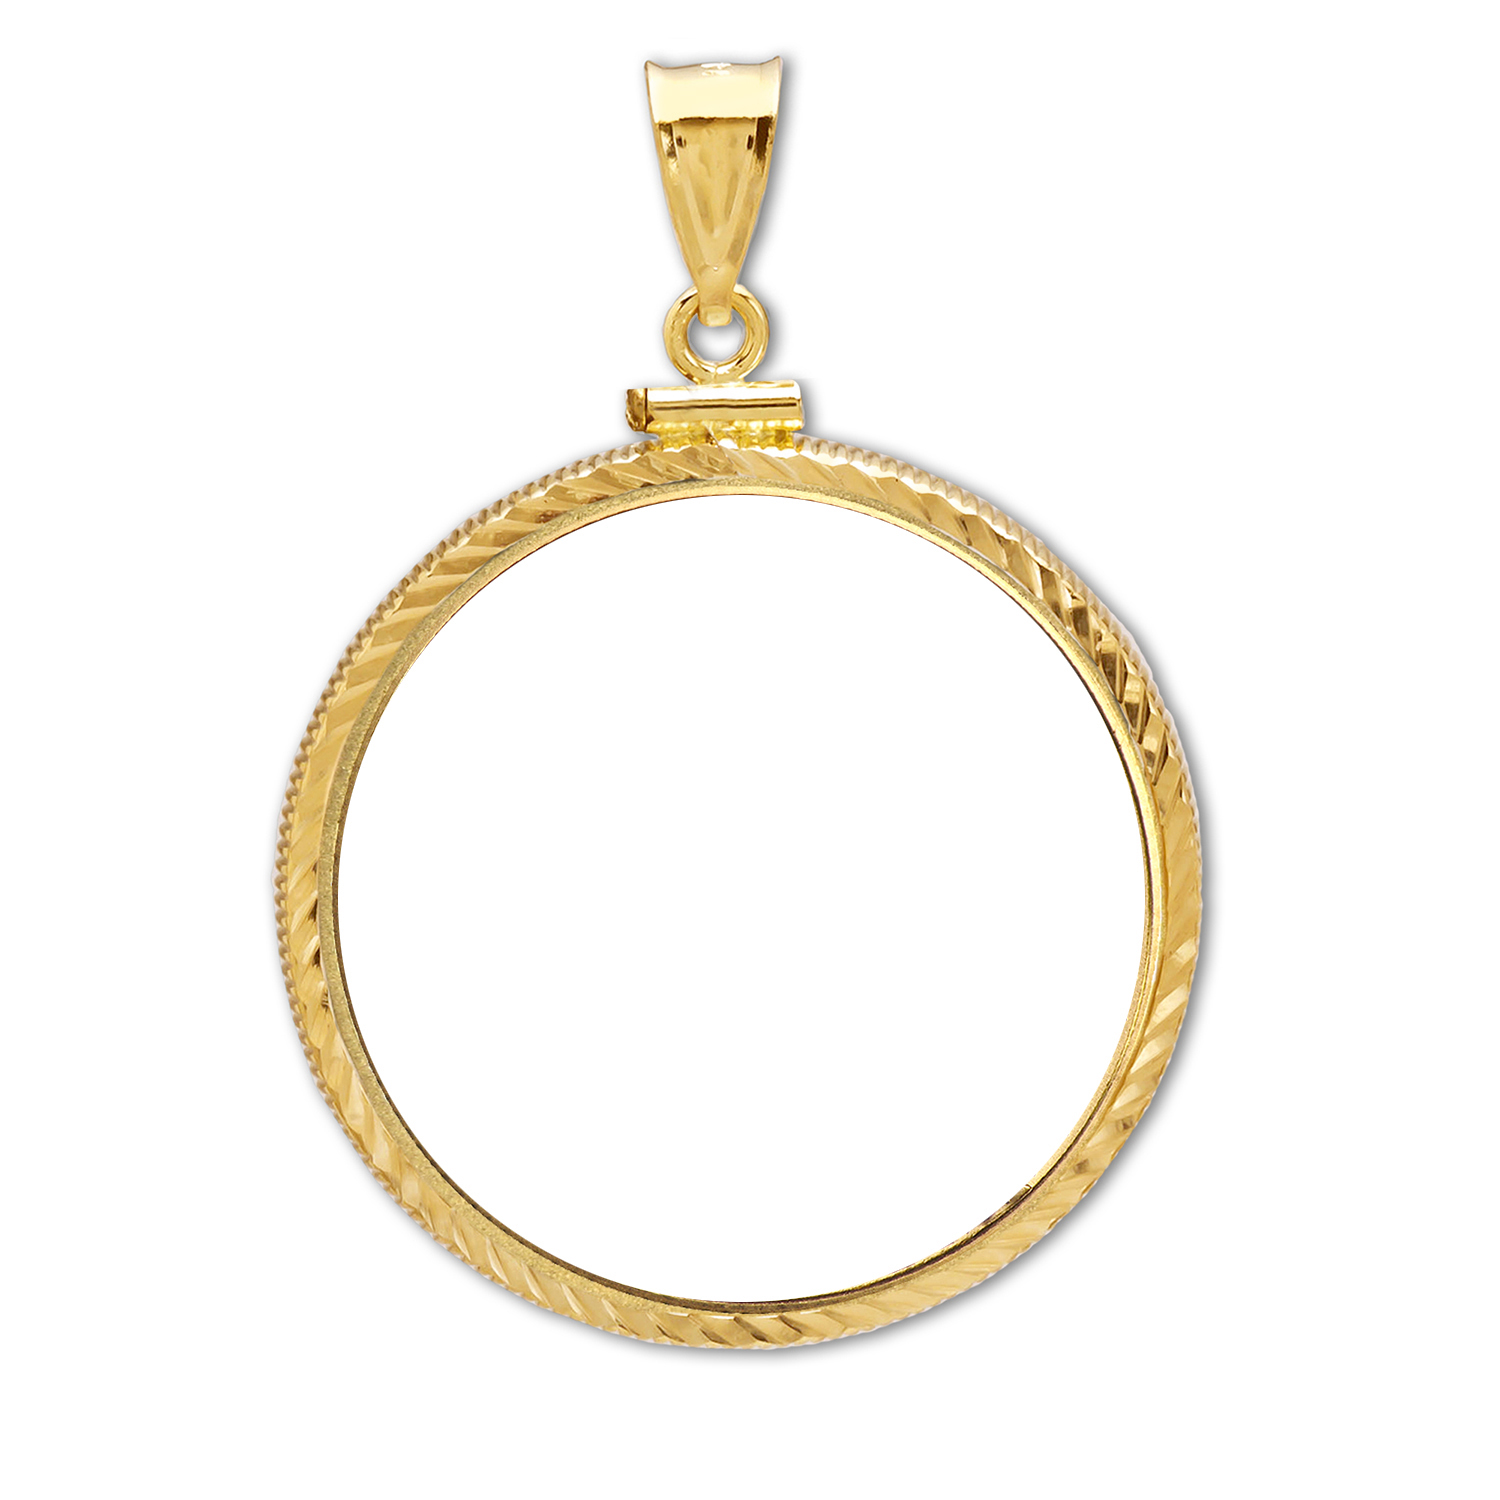 14K Gold Screw-Top Diamond-Cut Coin Bezel - 13 mm